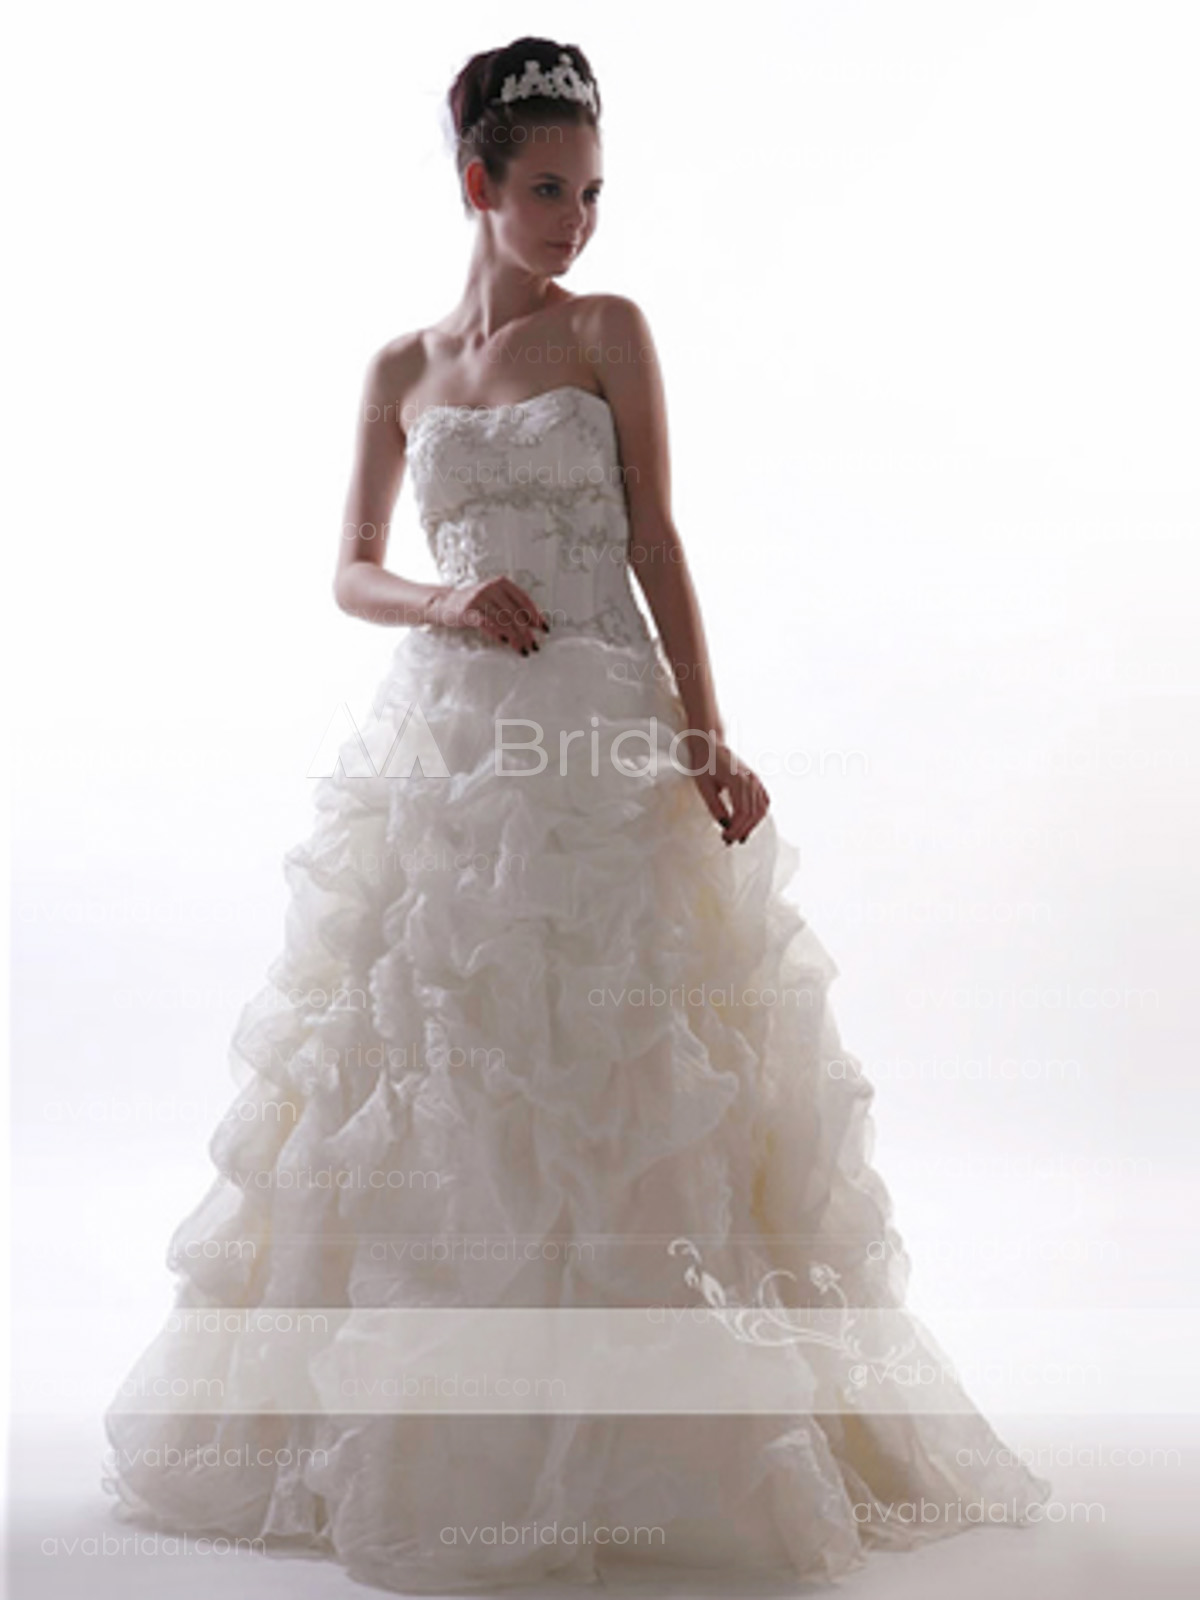 Chic Bridal Gown - Seran - Front